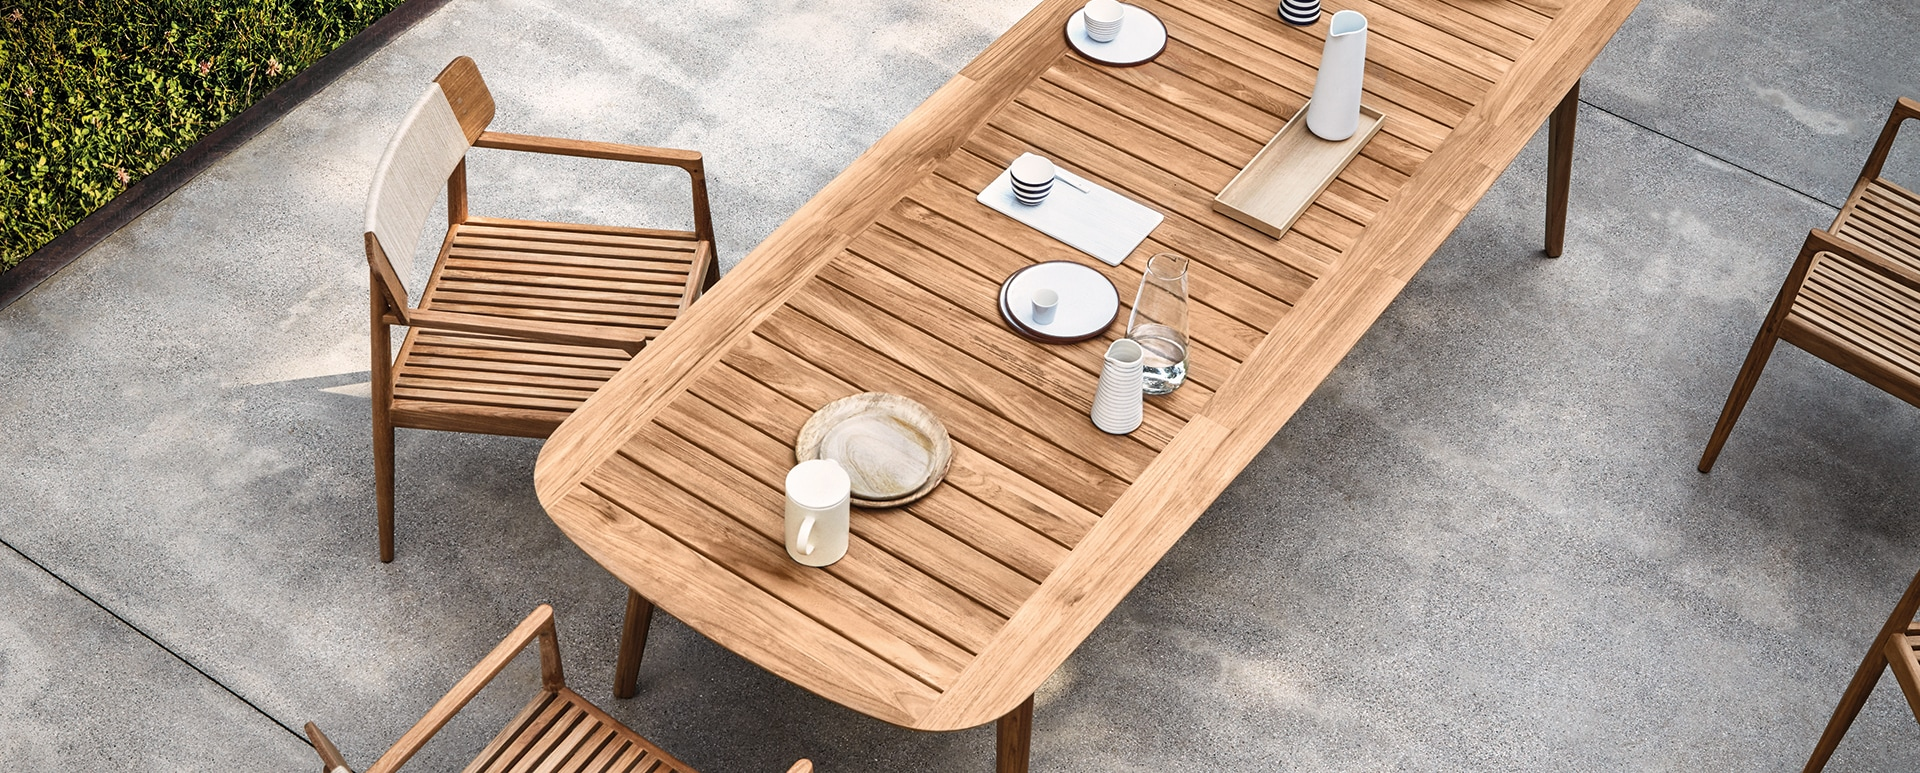 High-end outdoor furniture collection clipper by Hendrik Pedersen